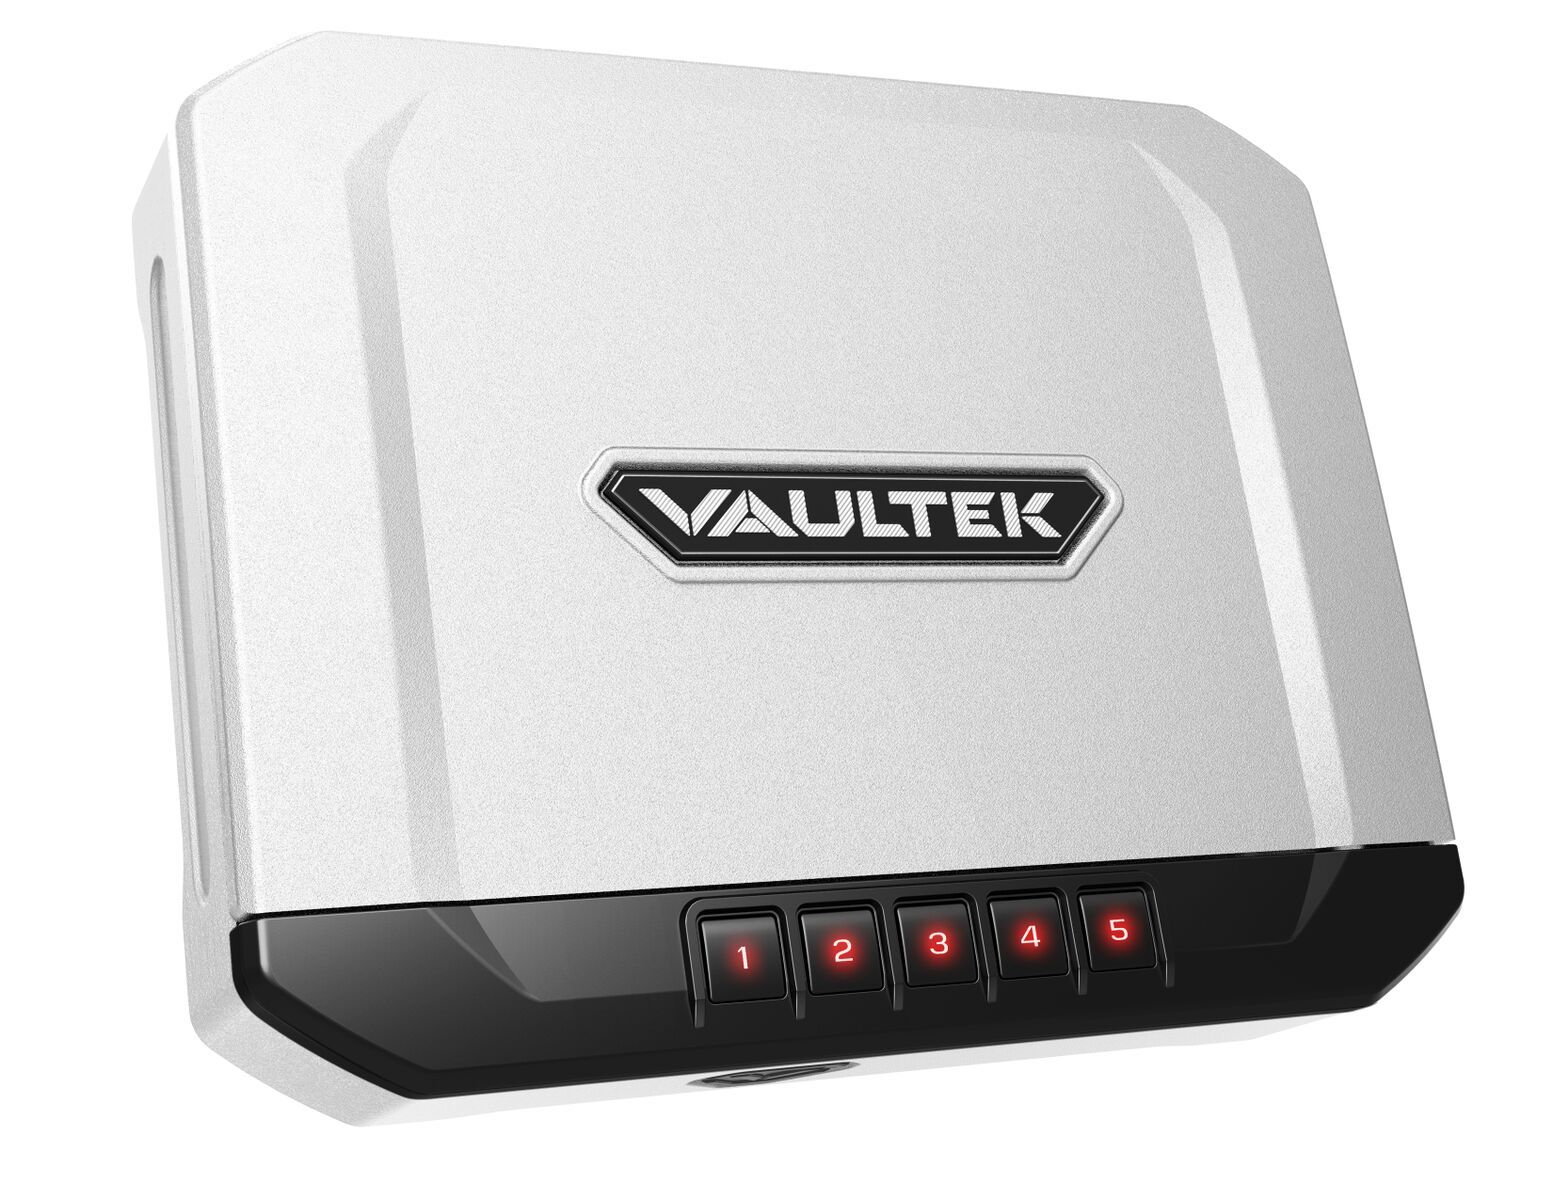 Handgun And Pistol Safes - Vaultek VE10 Quick Access Portable Pistol Safe